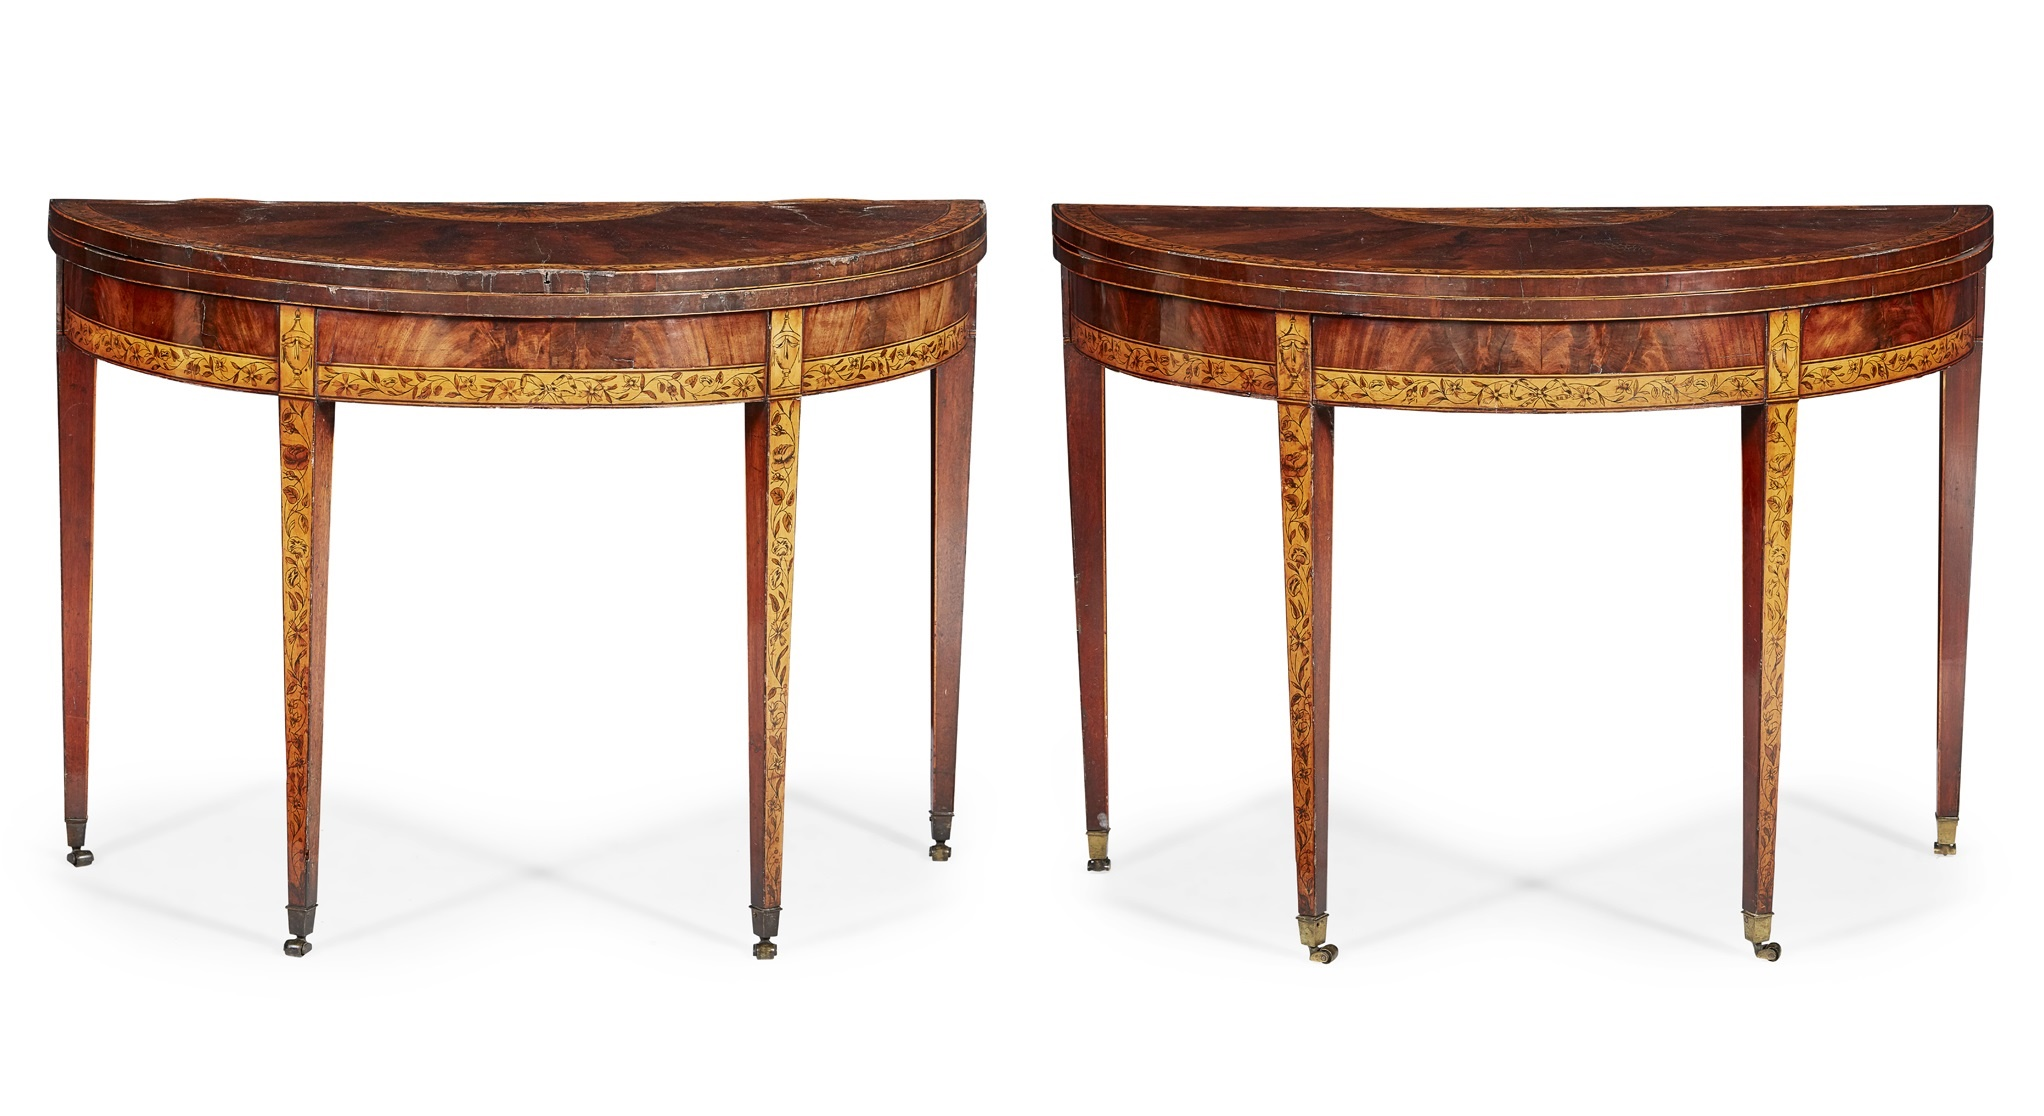 PAIR OF GEORGE III MAHOGANY, SATINWOOD AND PENWORK DEMILUNE GAMES TABLES, POSSIBLY IRISH